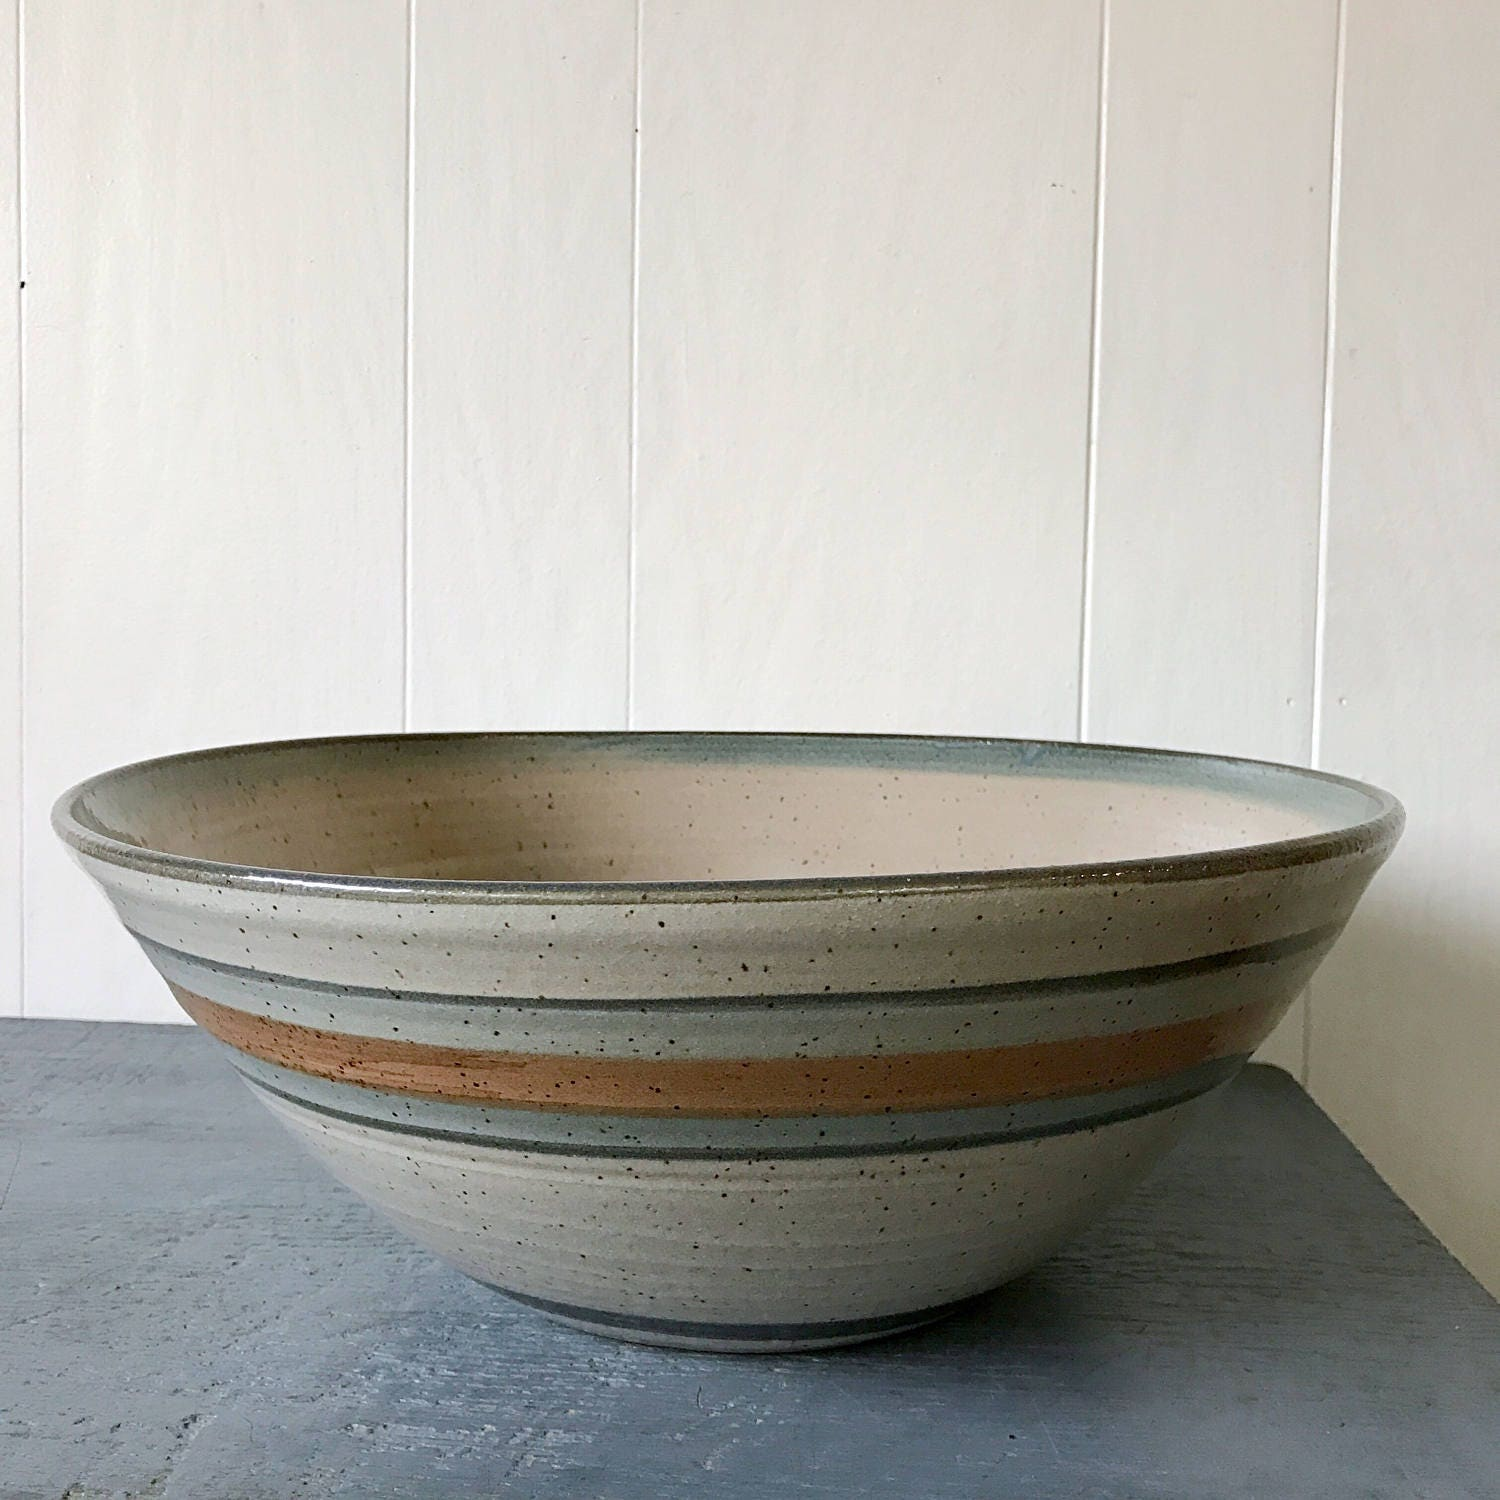 3-Piece Mixing Bowl Set - Castroville Pottery